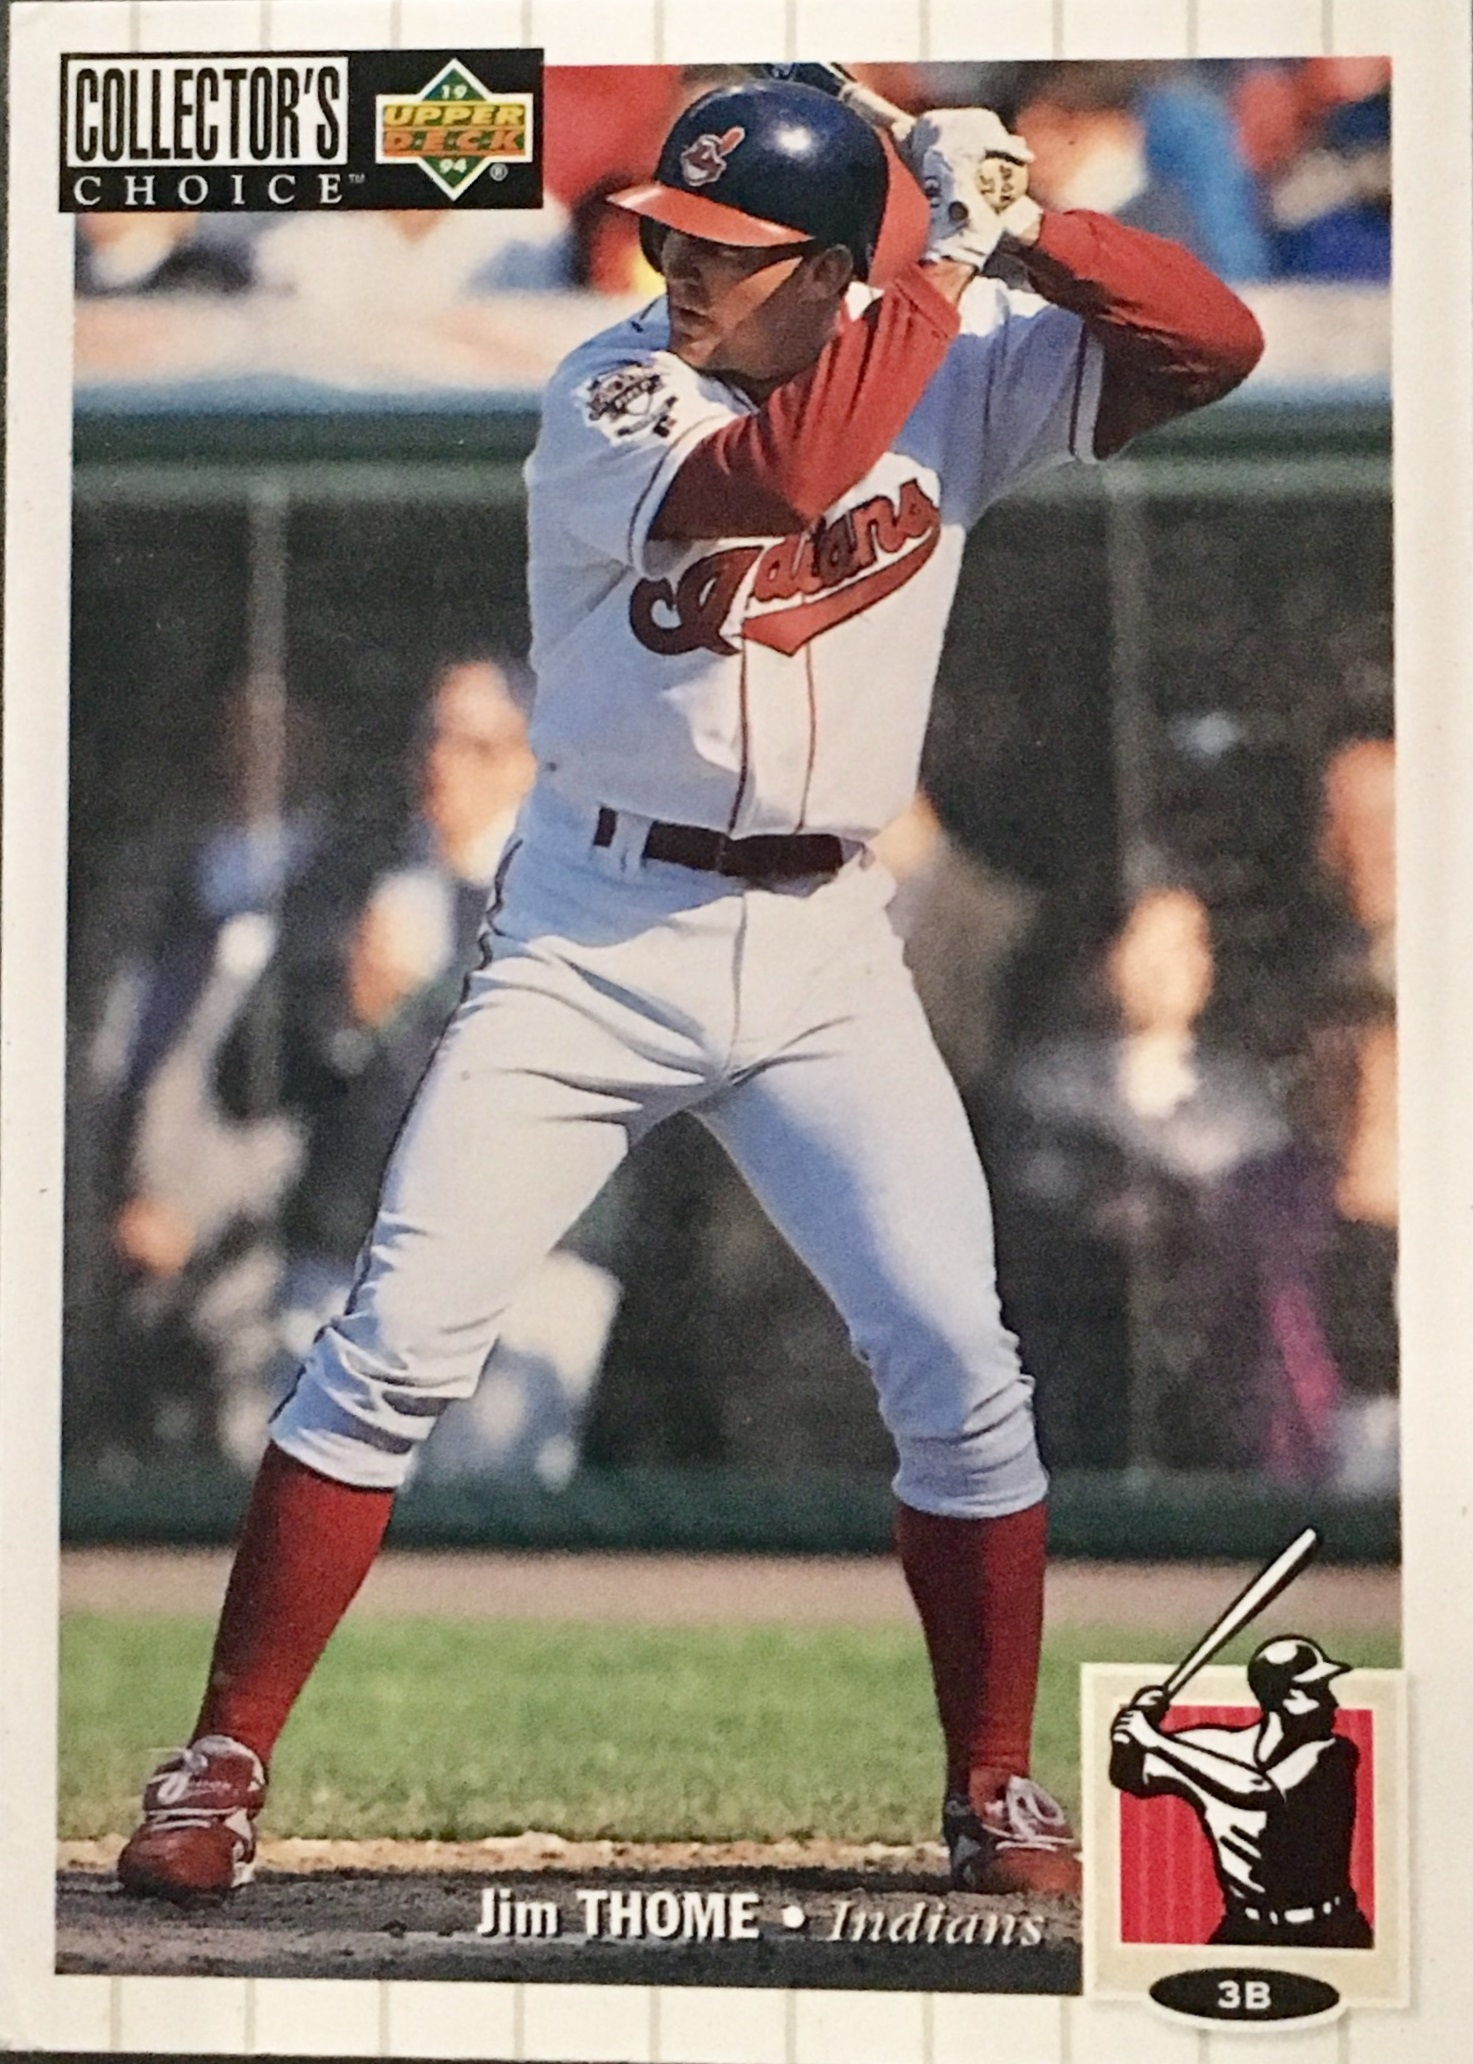 1994 Collector's Choice #624 Jim Thome